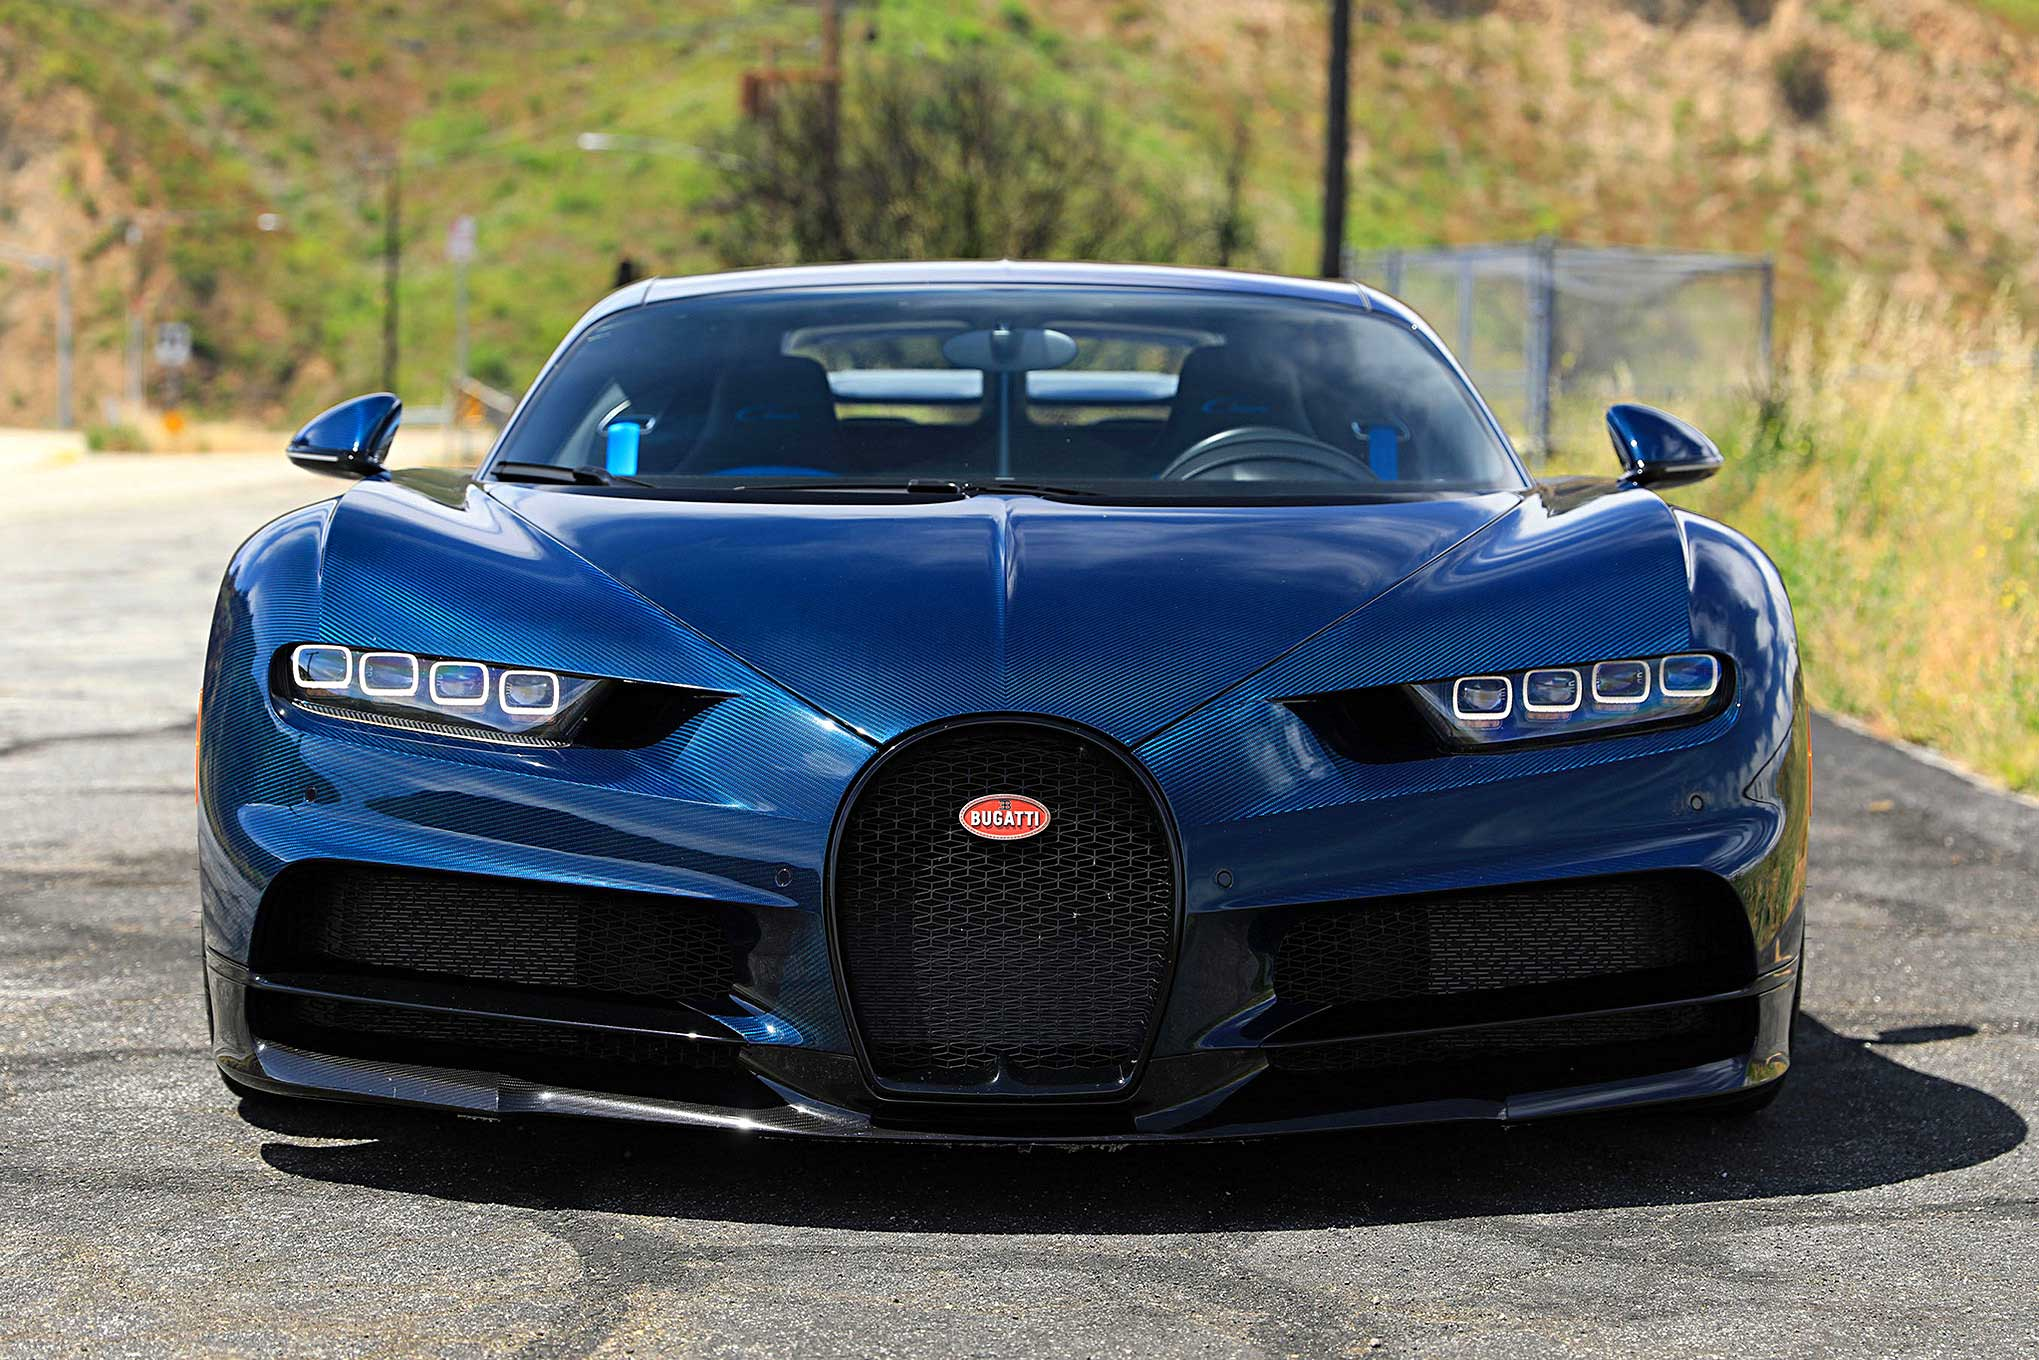 On the Road: Bugatti Chiron